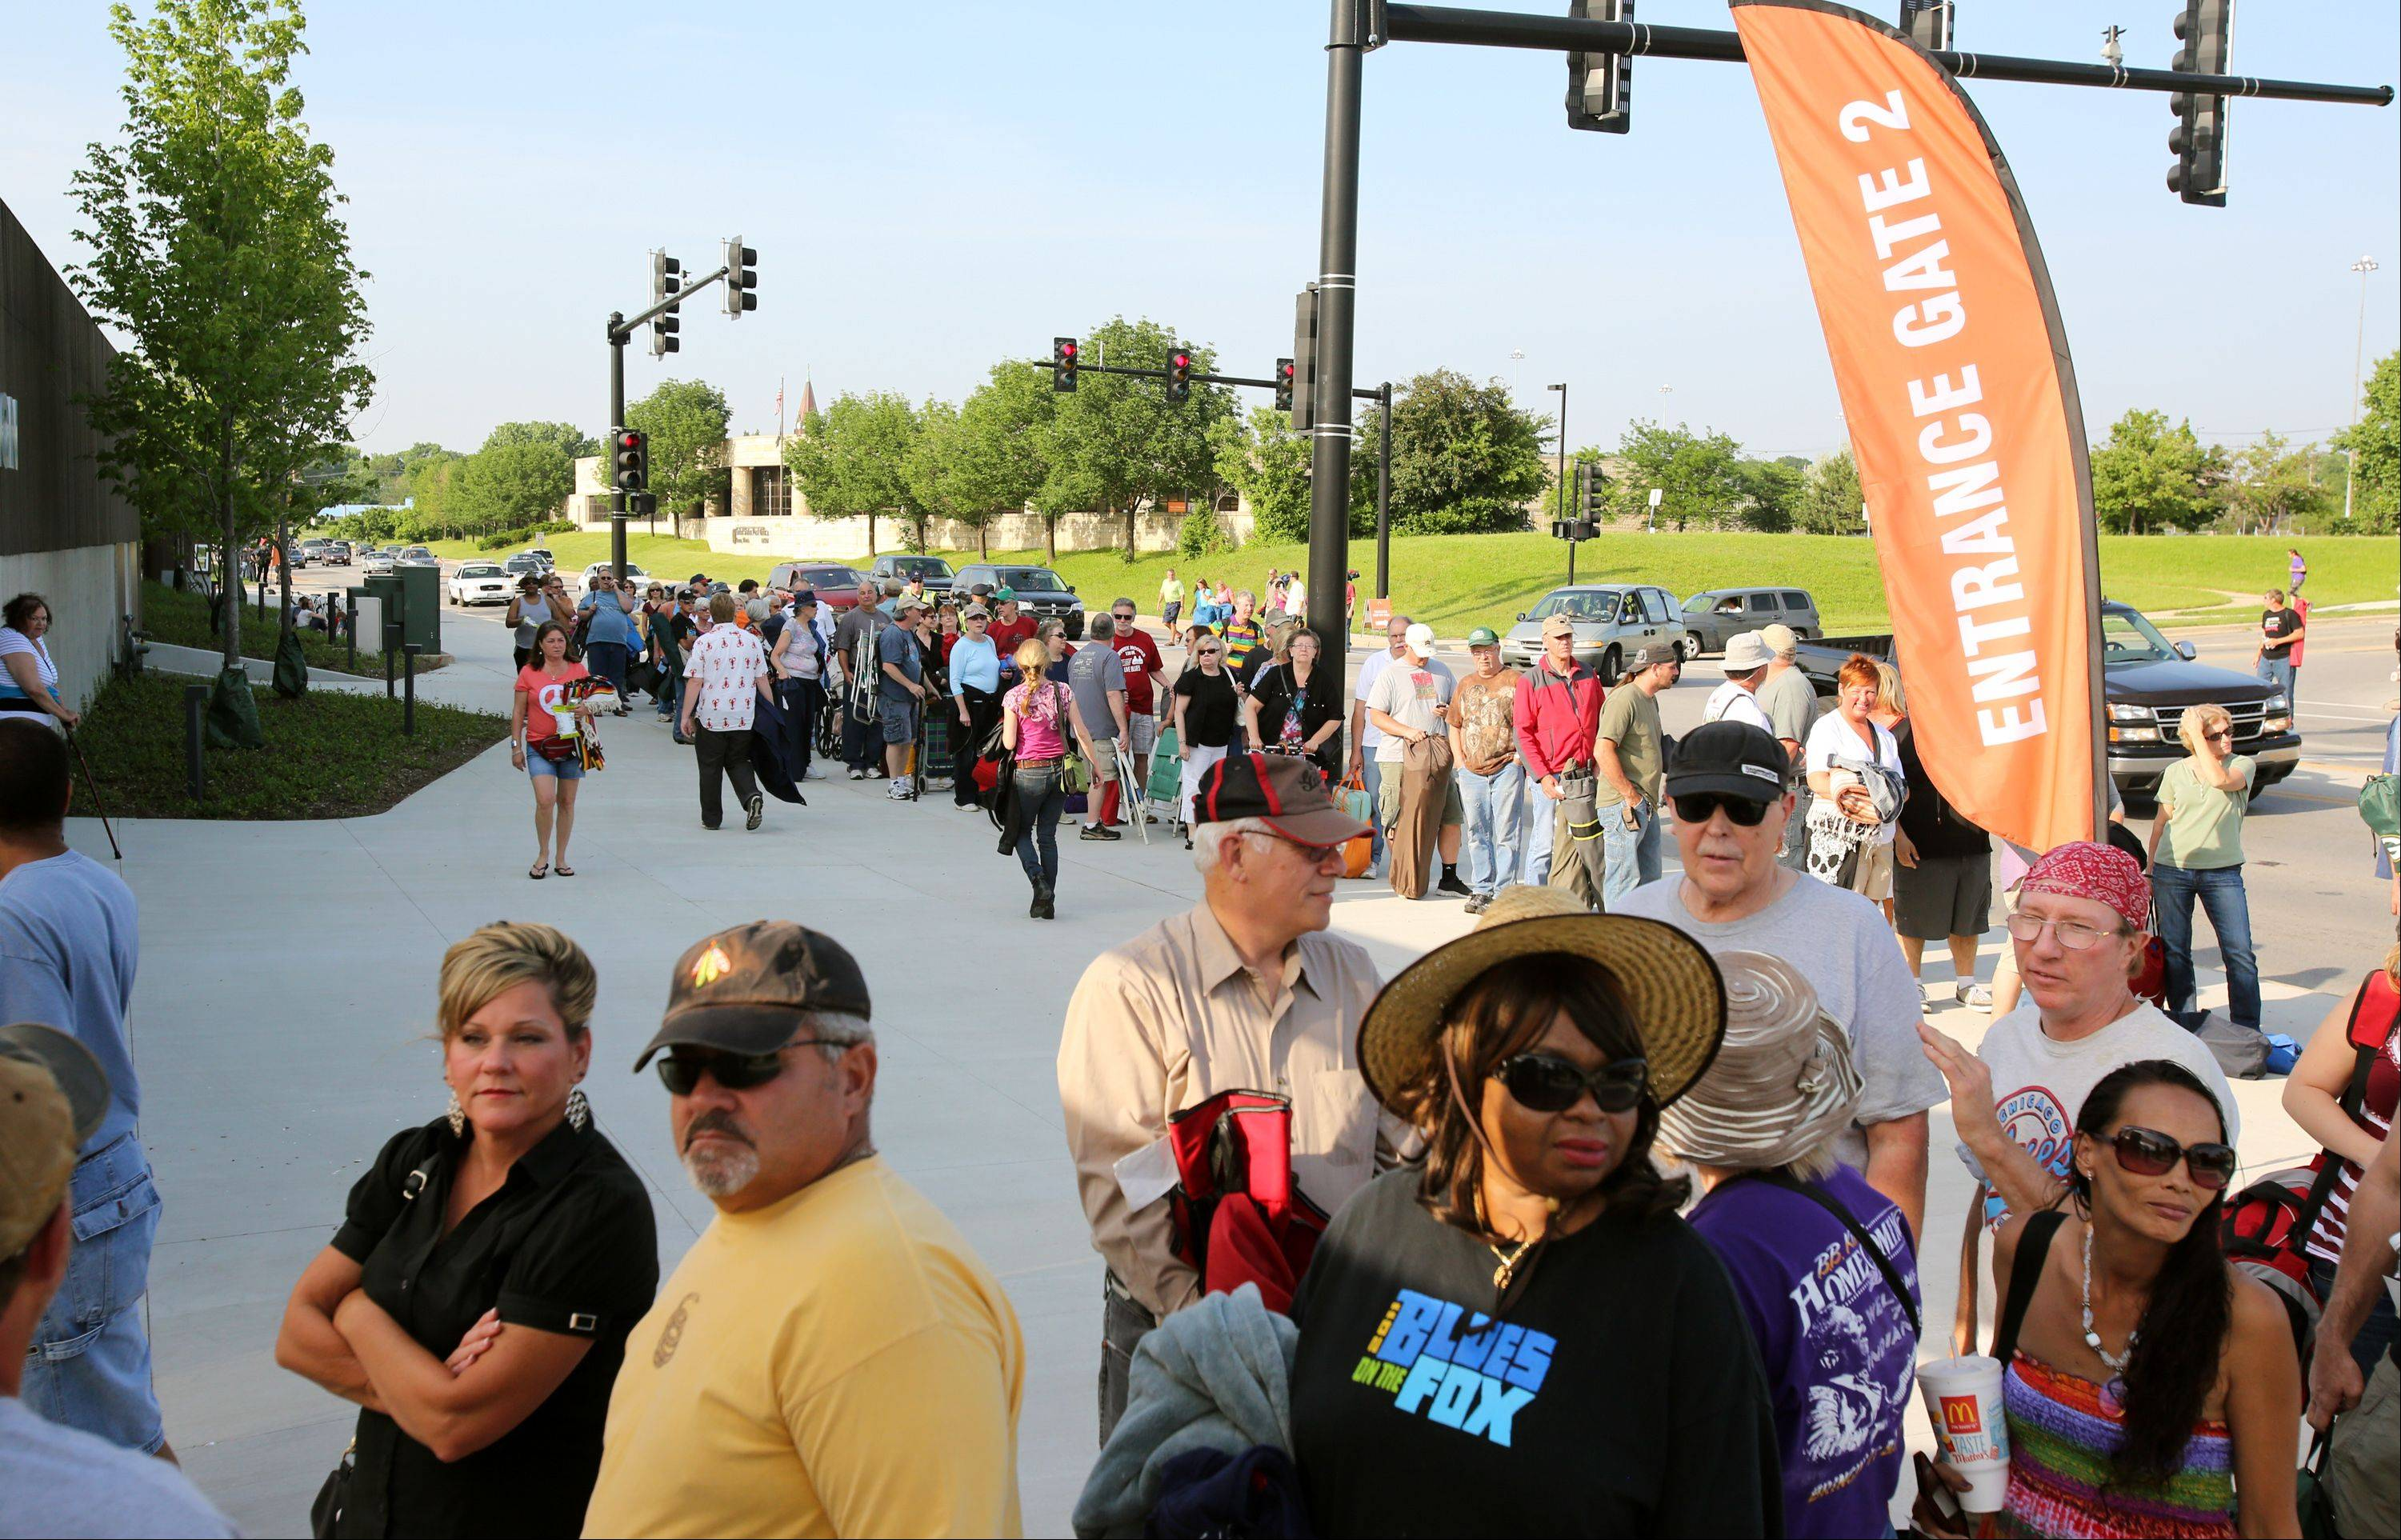 Lines form for the opening night of RiverEdge Park, coinciding with the 17th annual Blues on the Fox festival.